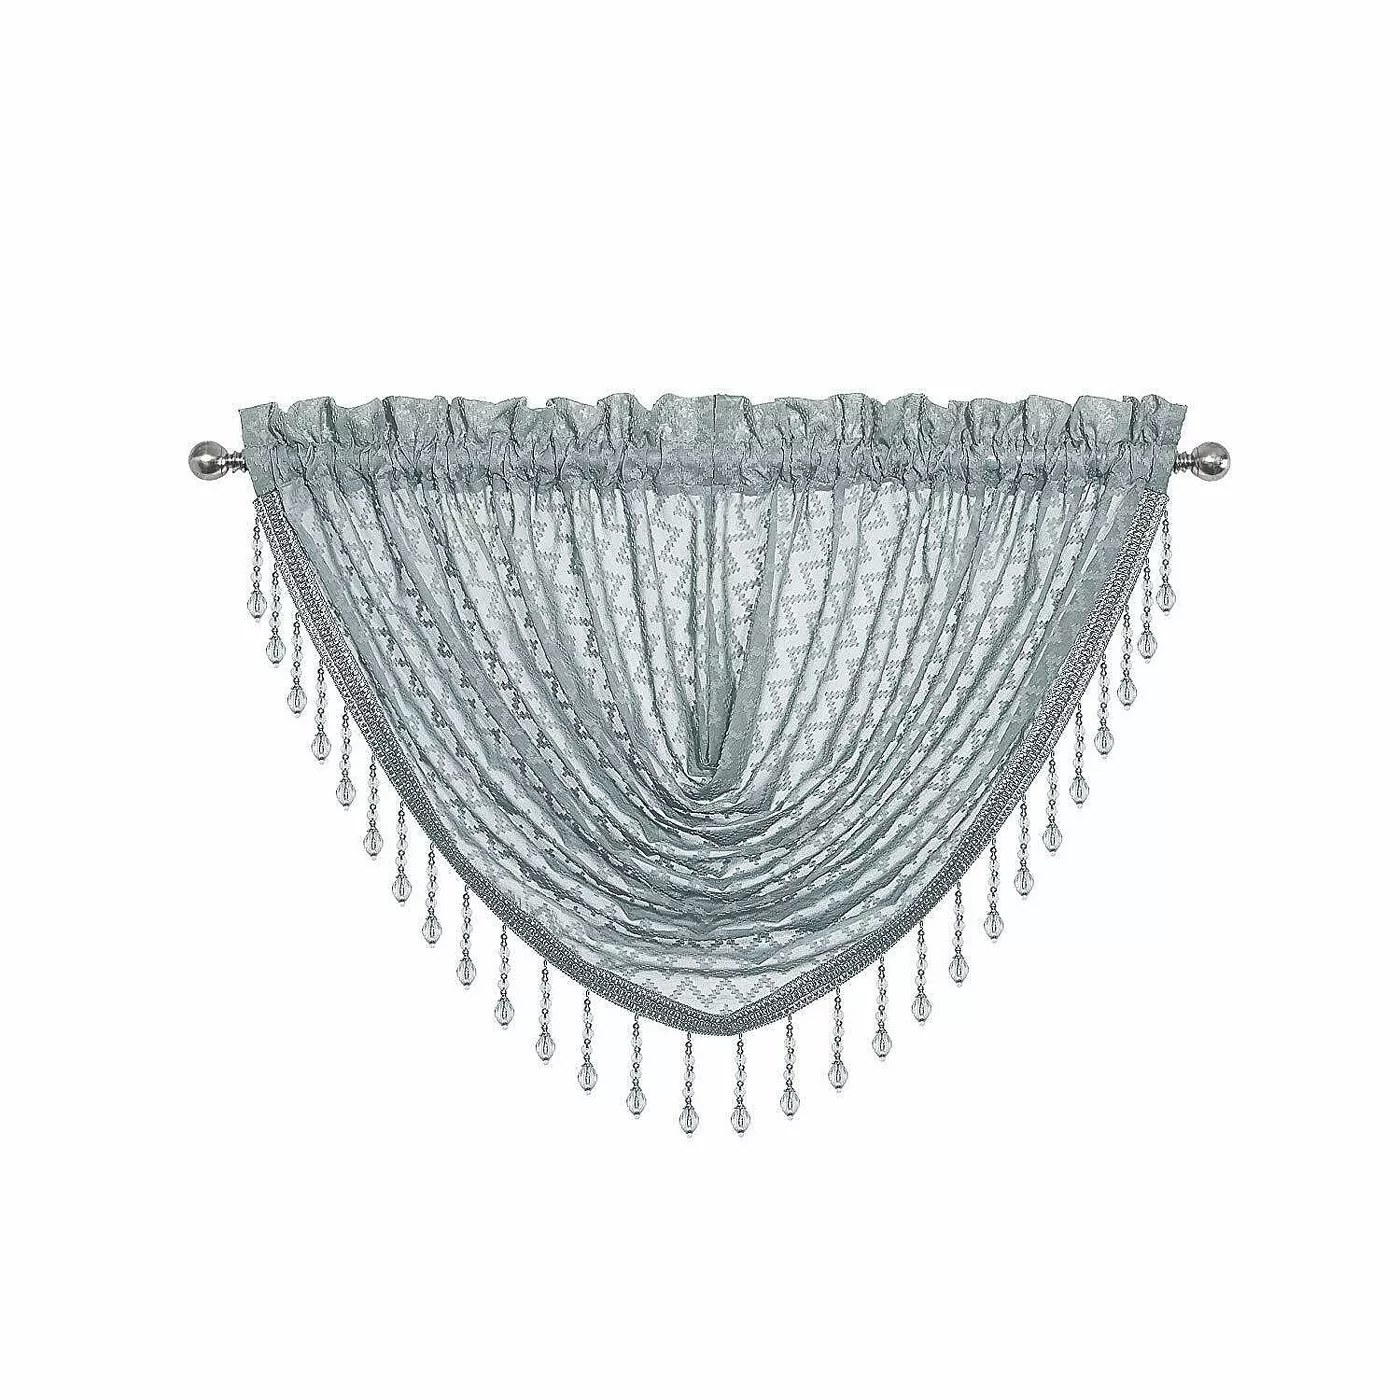 The chevron-patterned, beaded valance in seaside blue